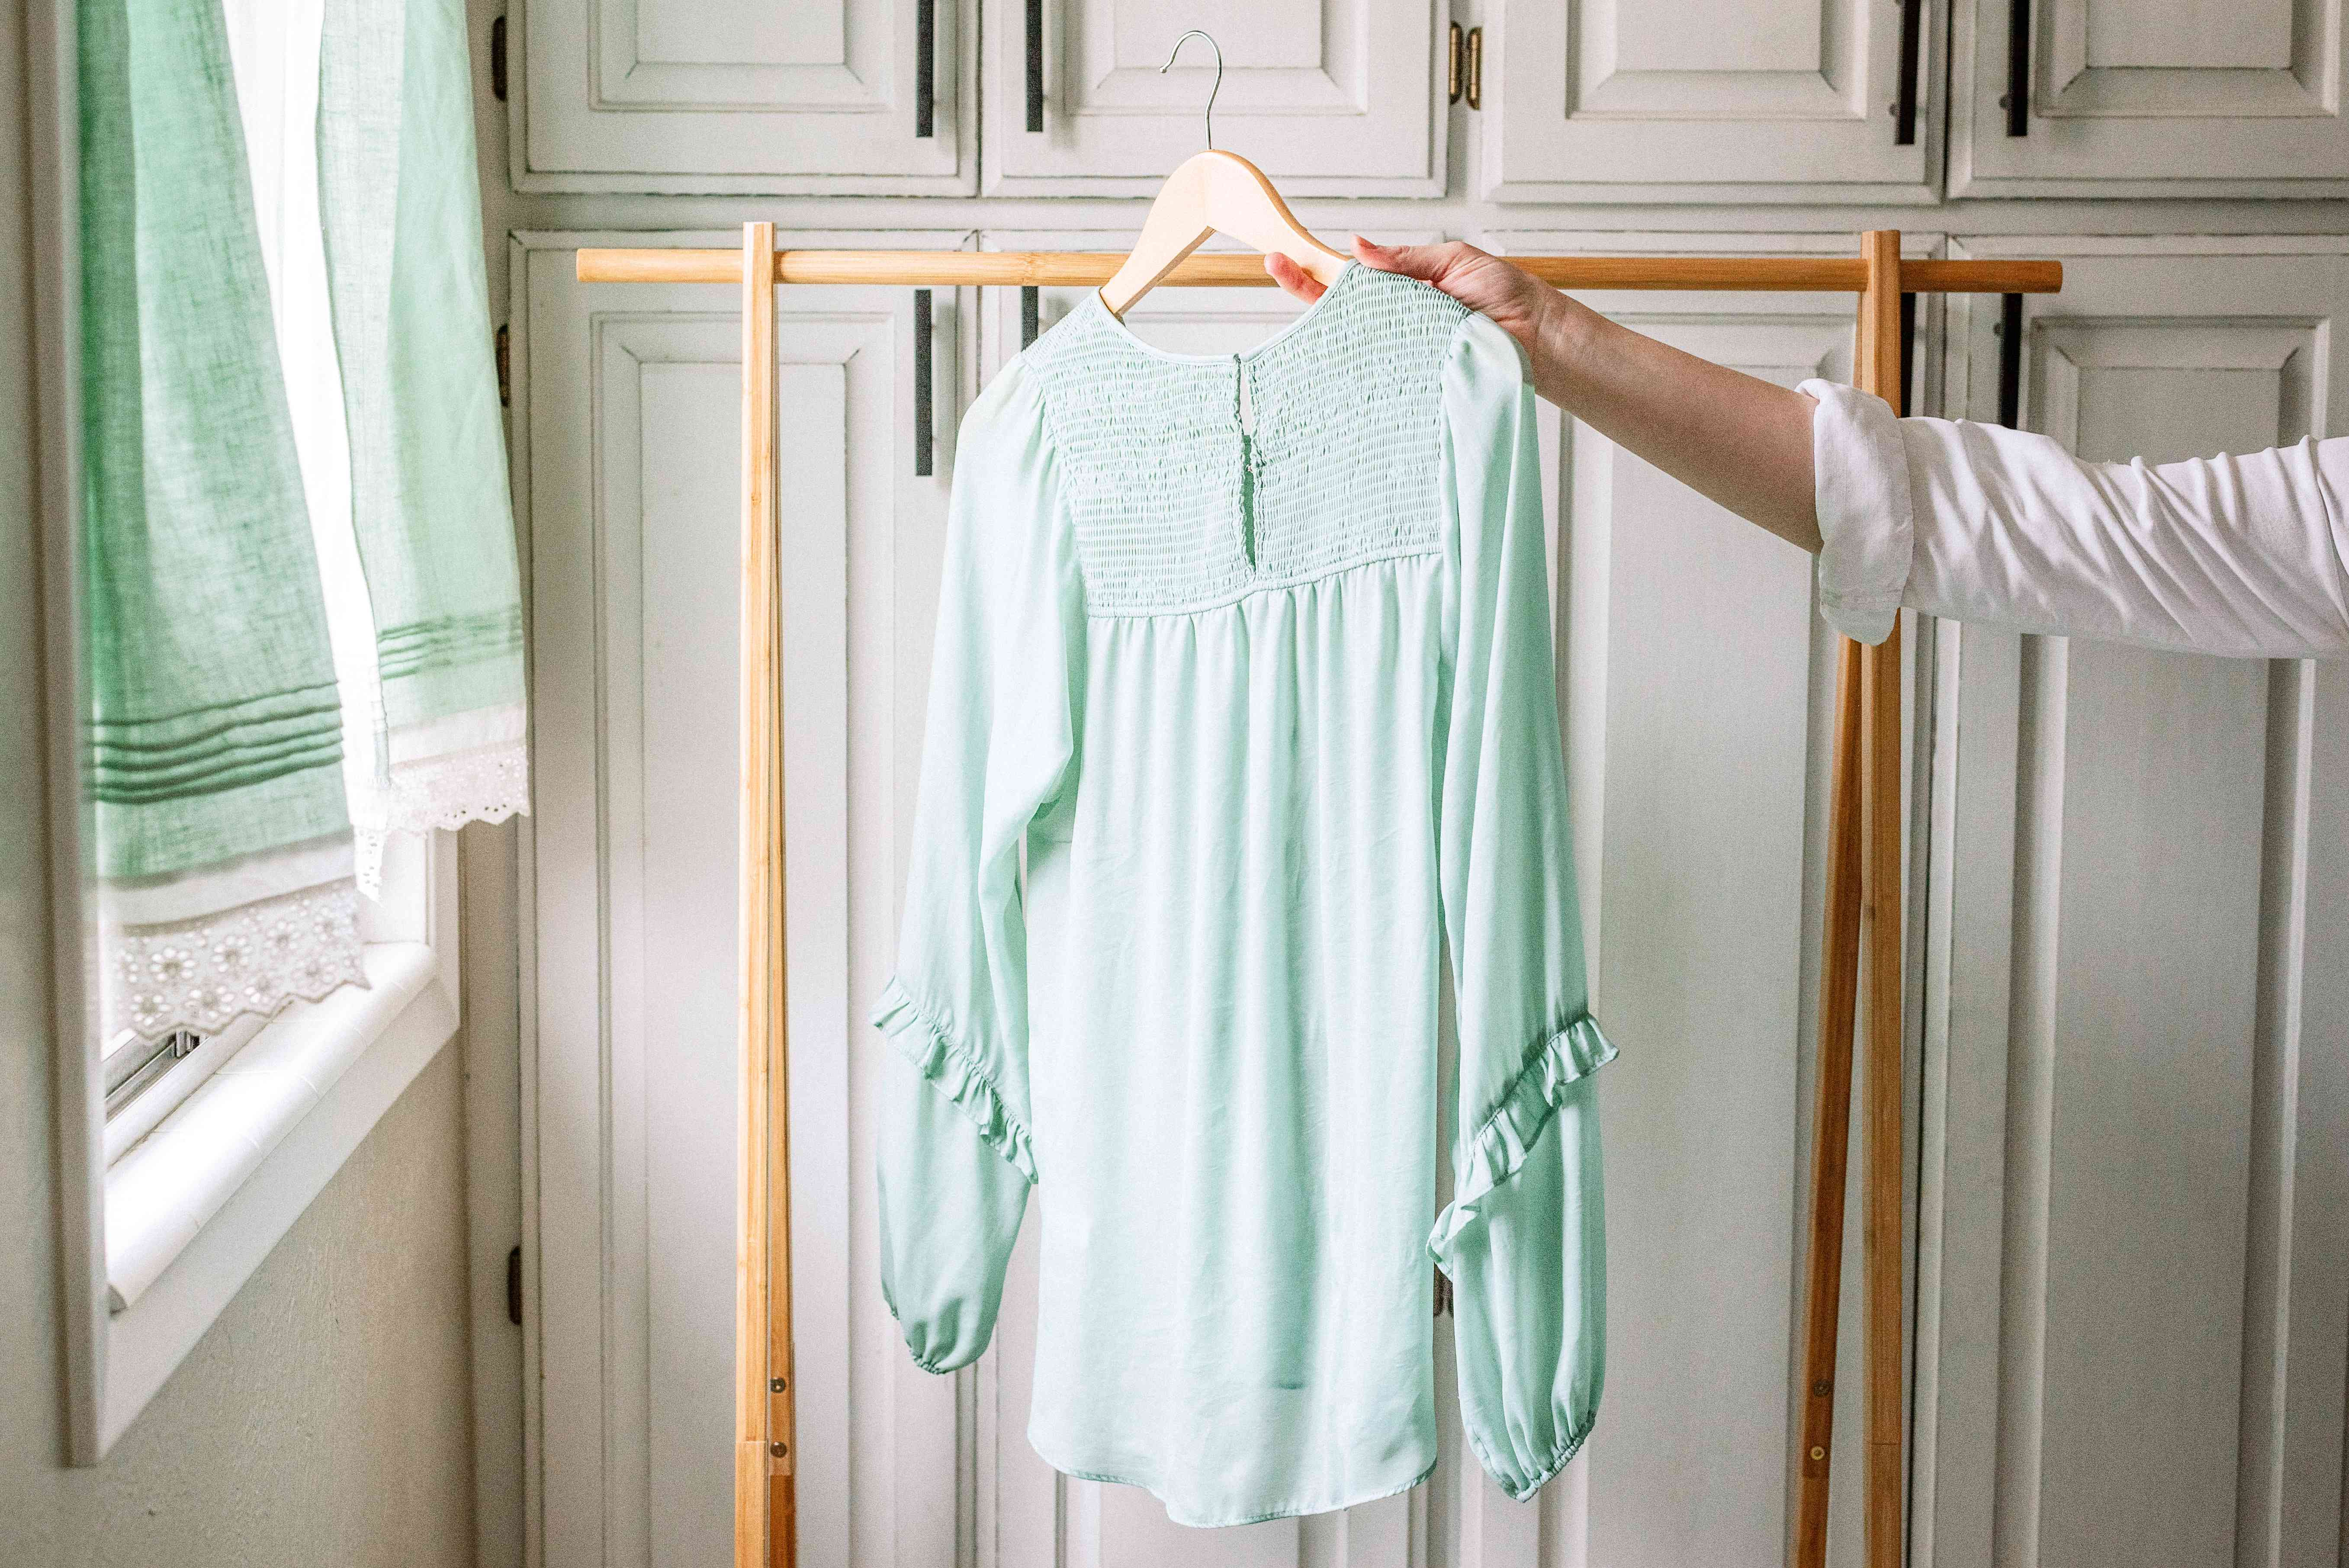 using an indoor drying rack for clothing